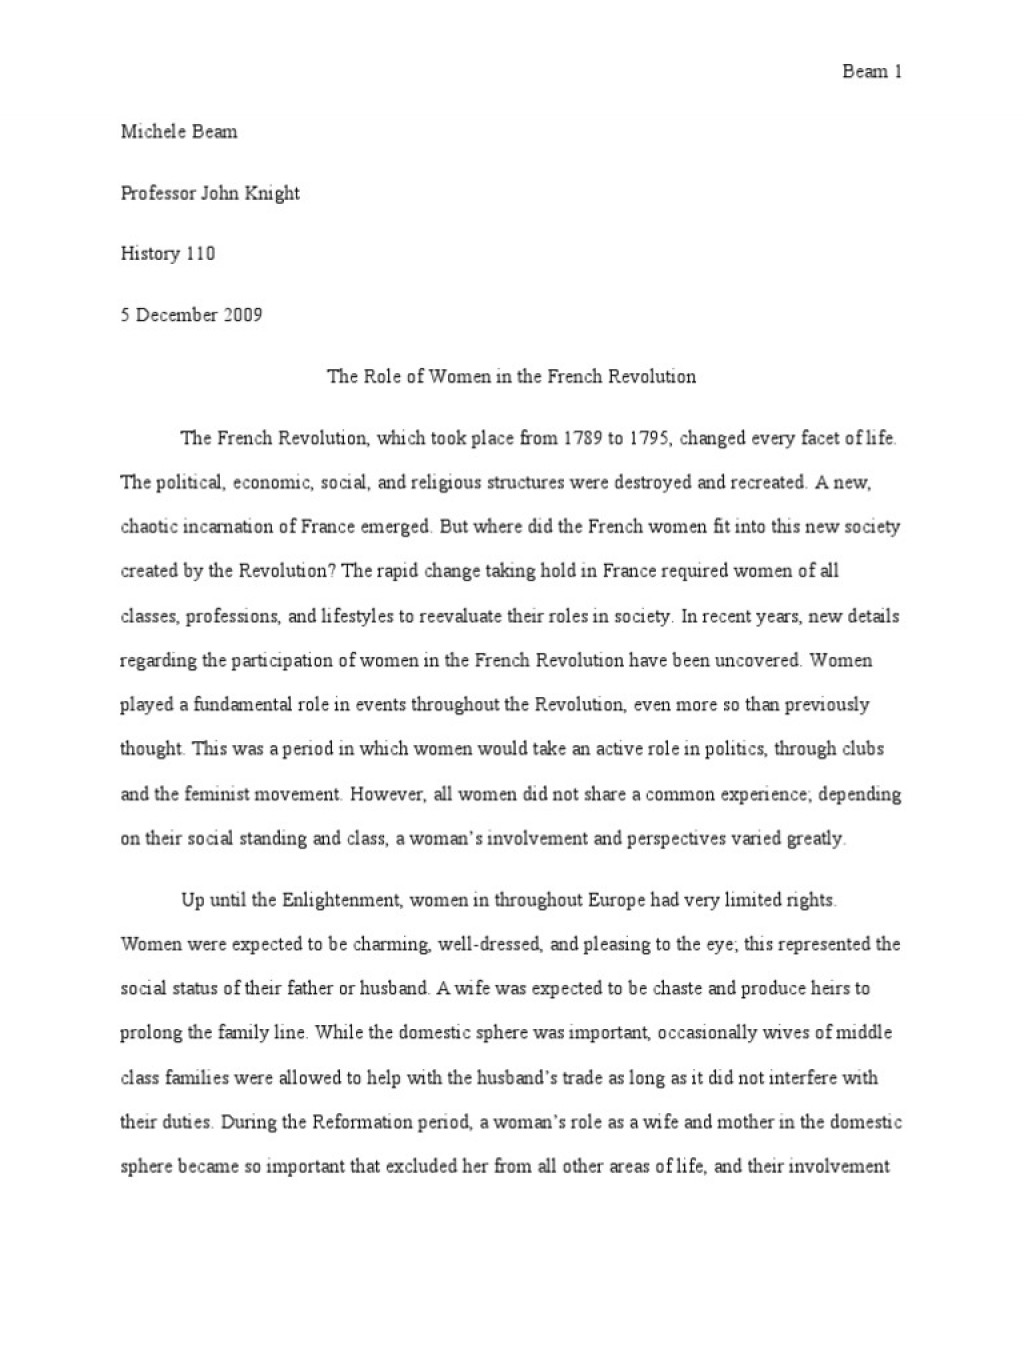 013 French Revolution Essay Phenomenal Outline Titles Causes Conclusion Large